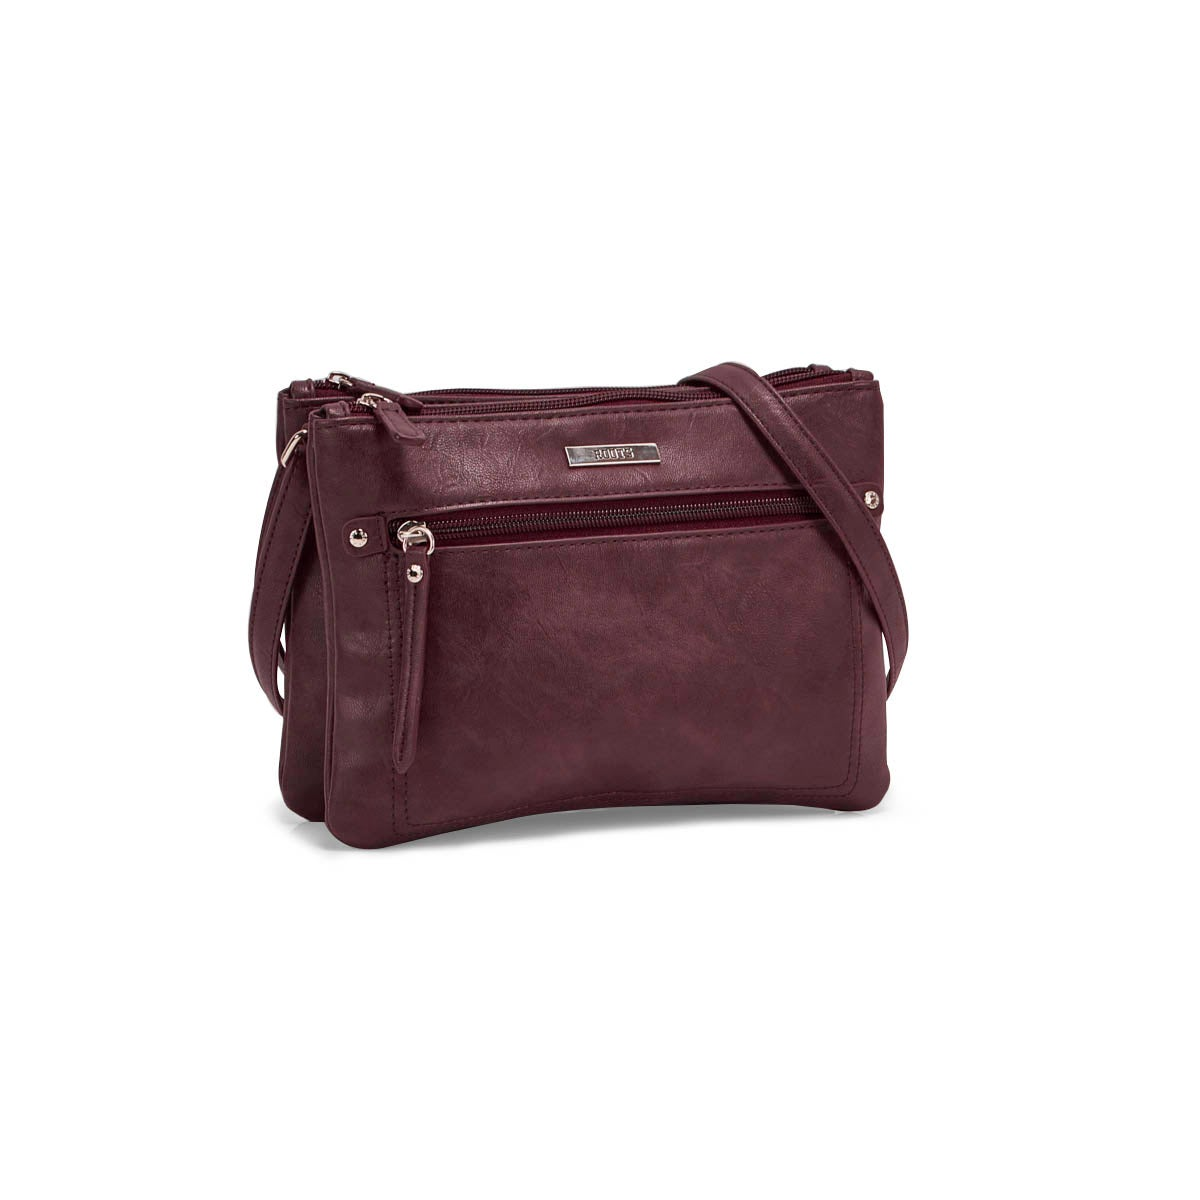 Lds Roots73 burgundy 2 cmptmnt crossbody